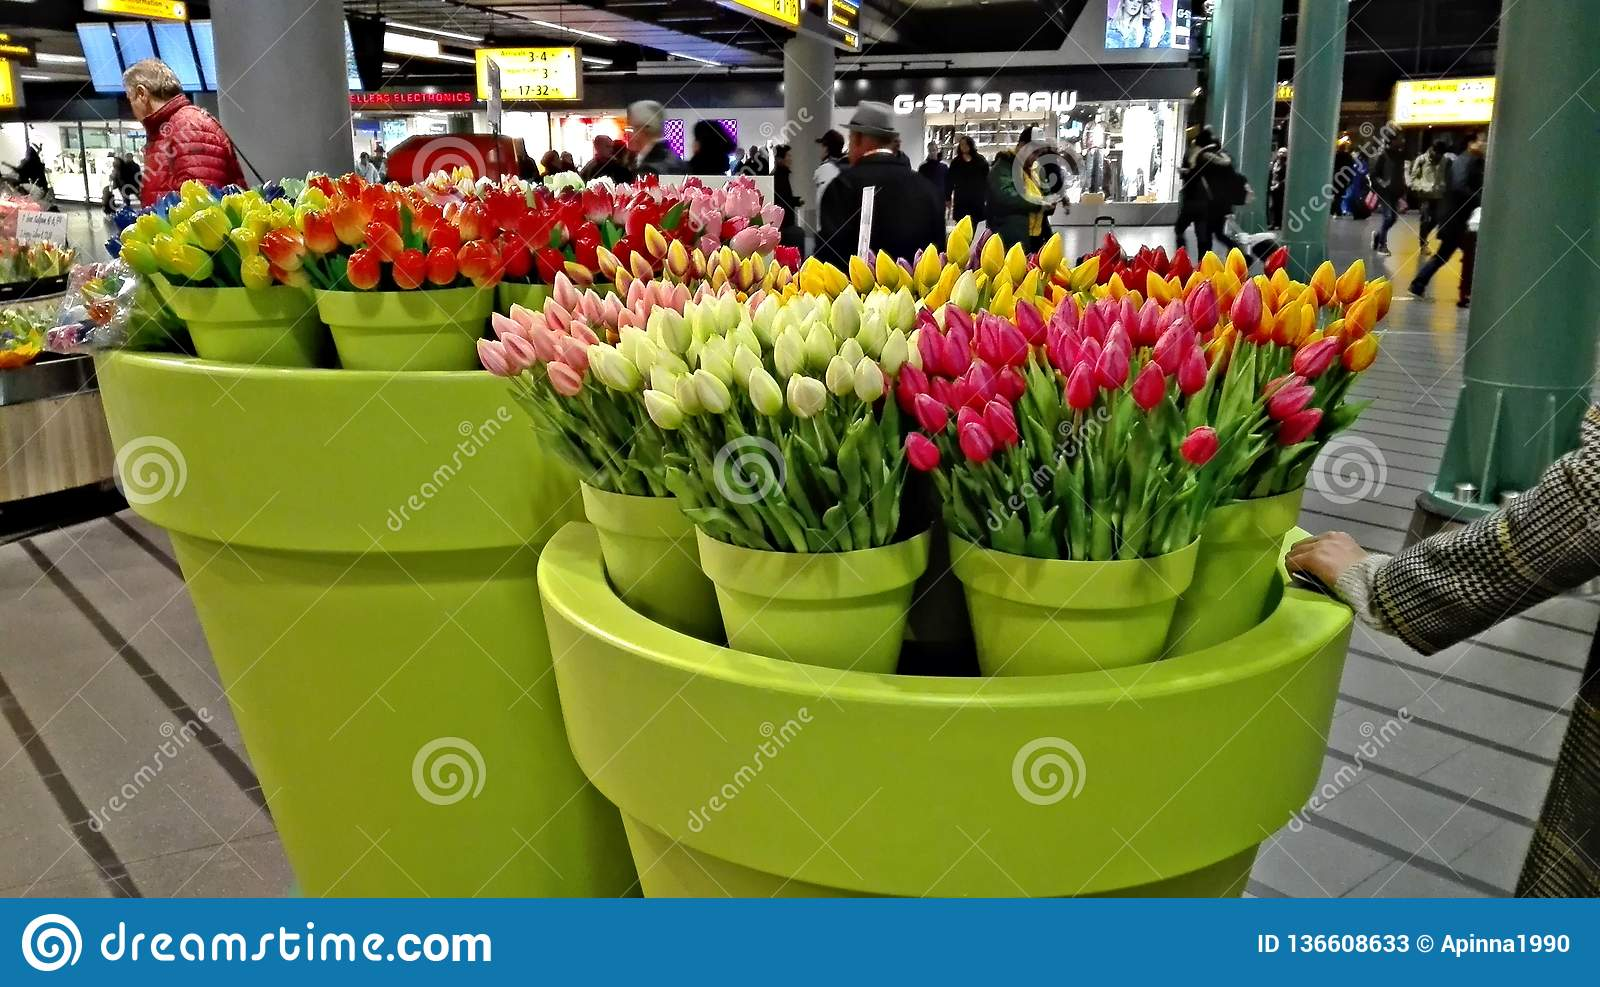 Dreamstime.com & Large Vases Of Fake Flowers Namely Tulips Stock Image ...